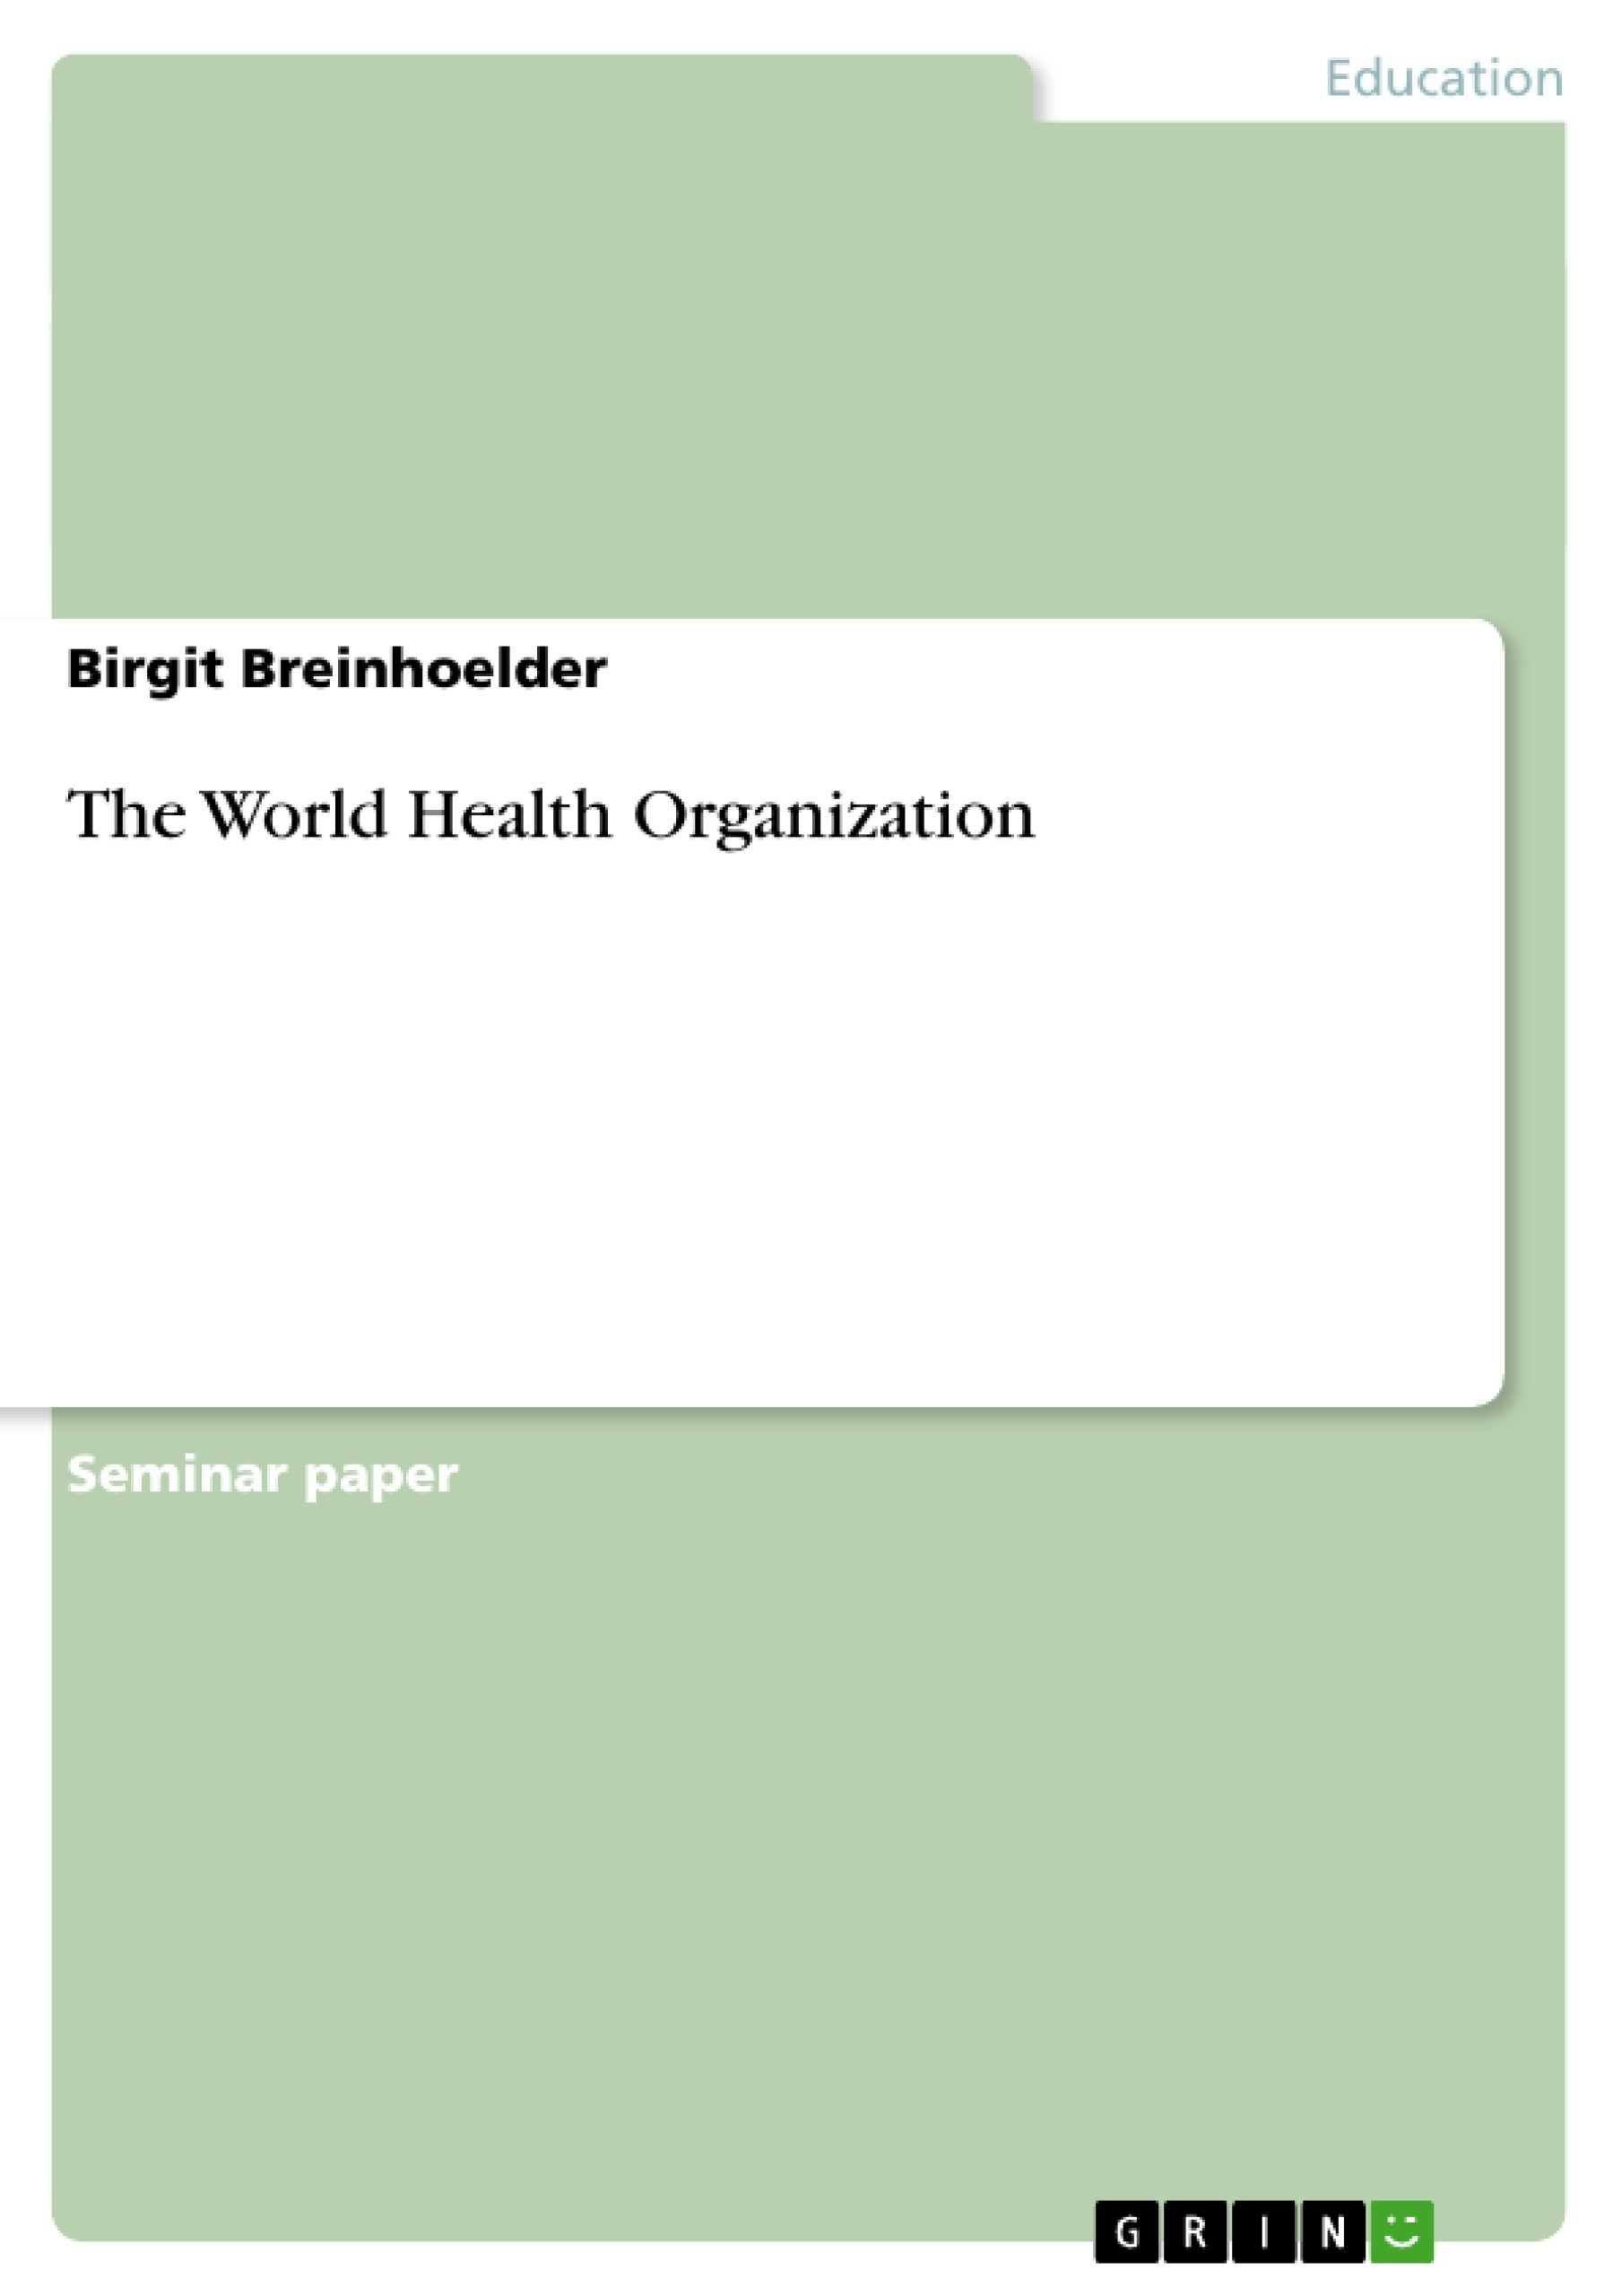 Title: The World Health Organization